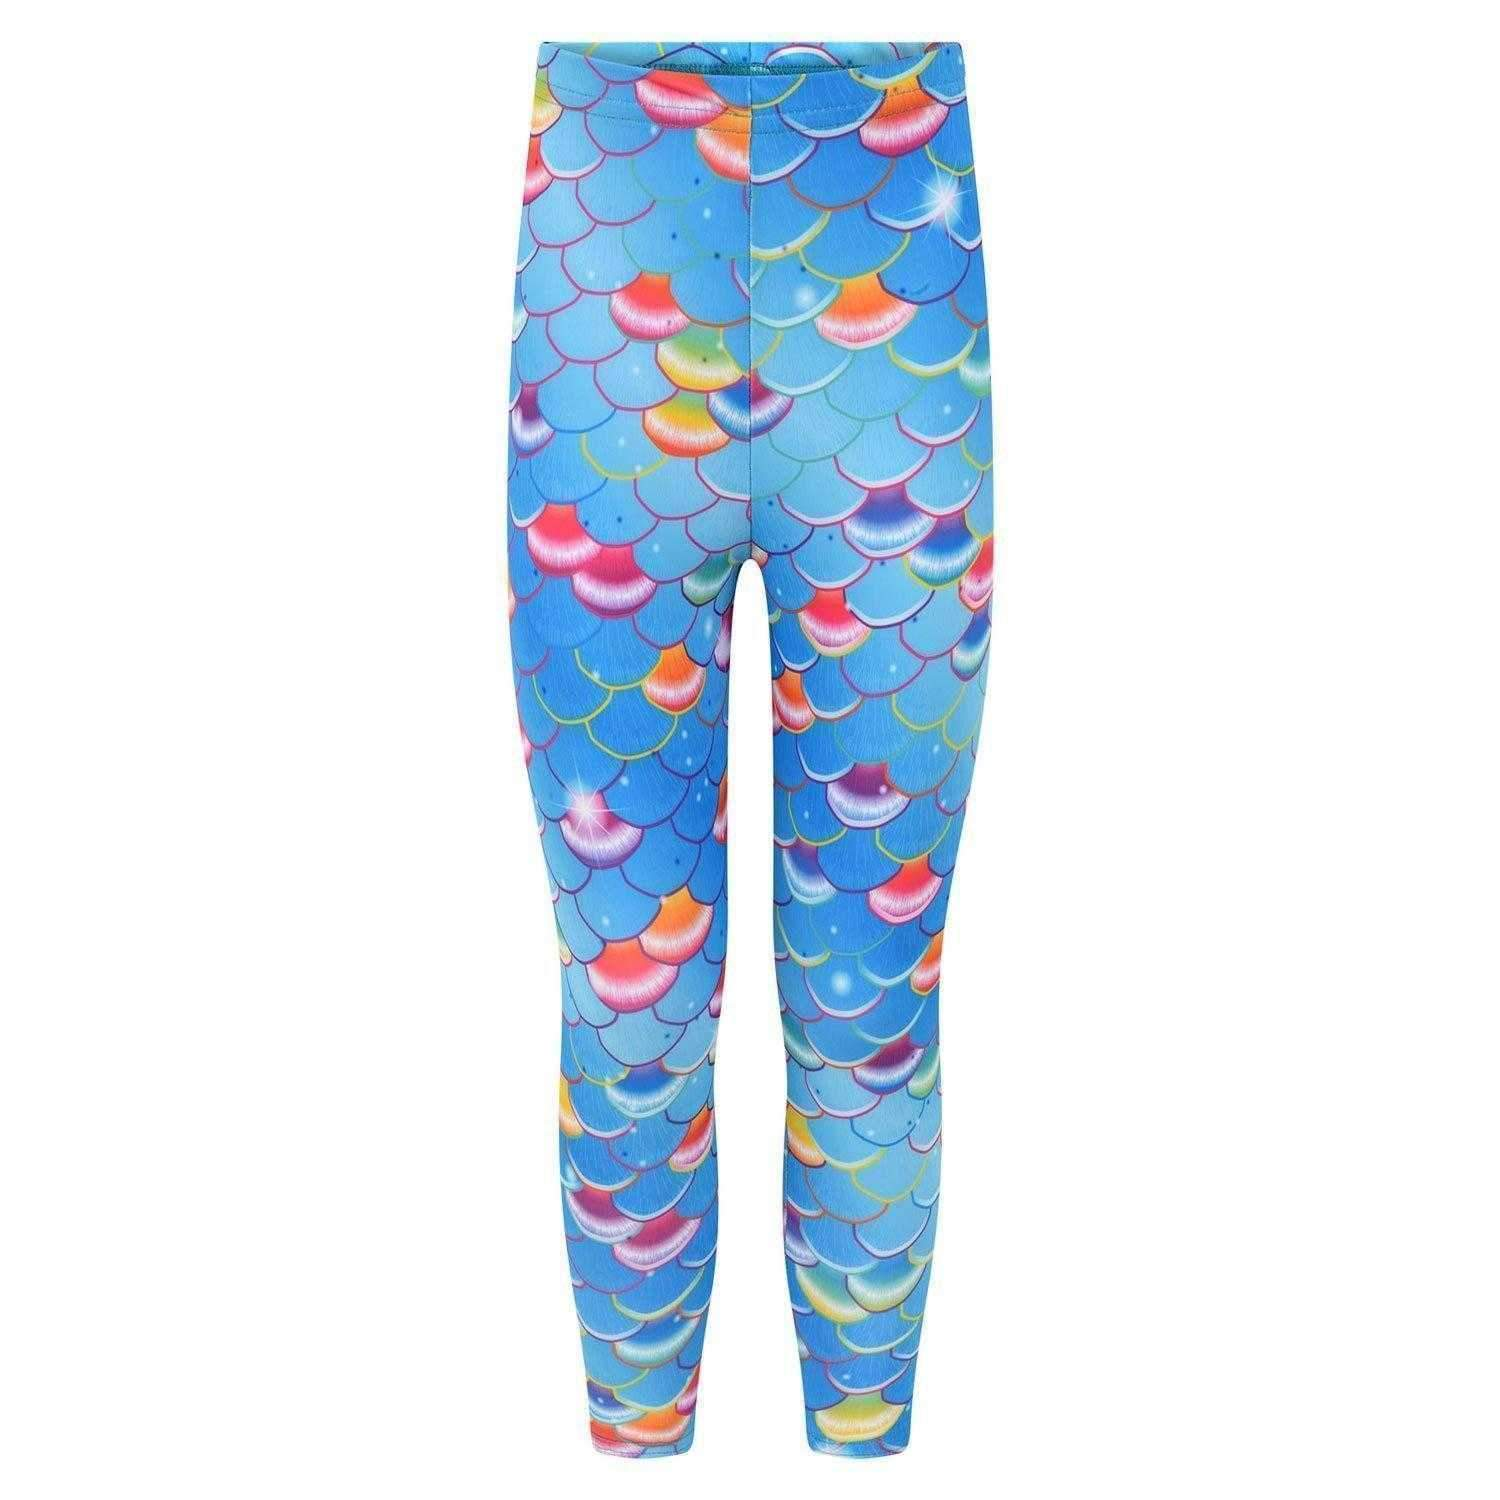 Pacific Rainbow Meerjungfrau Leggings - Meerjungfrauen Schwanz UK